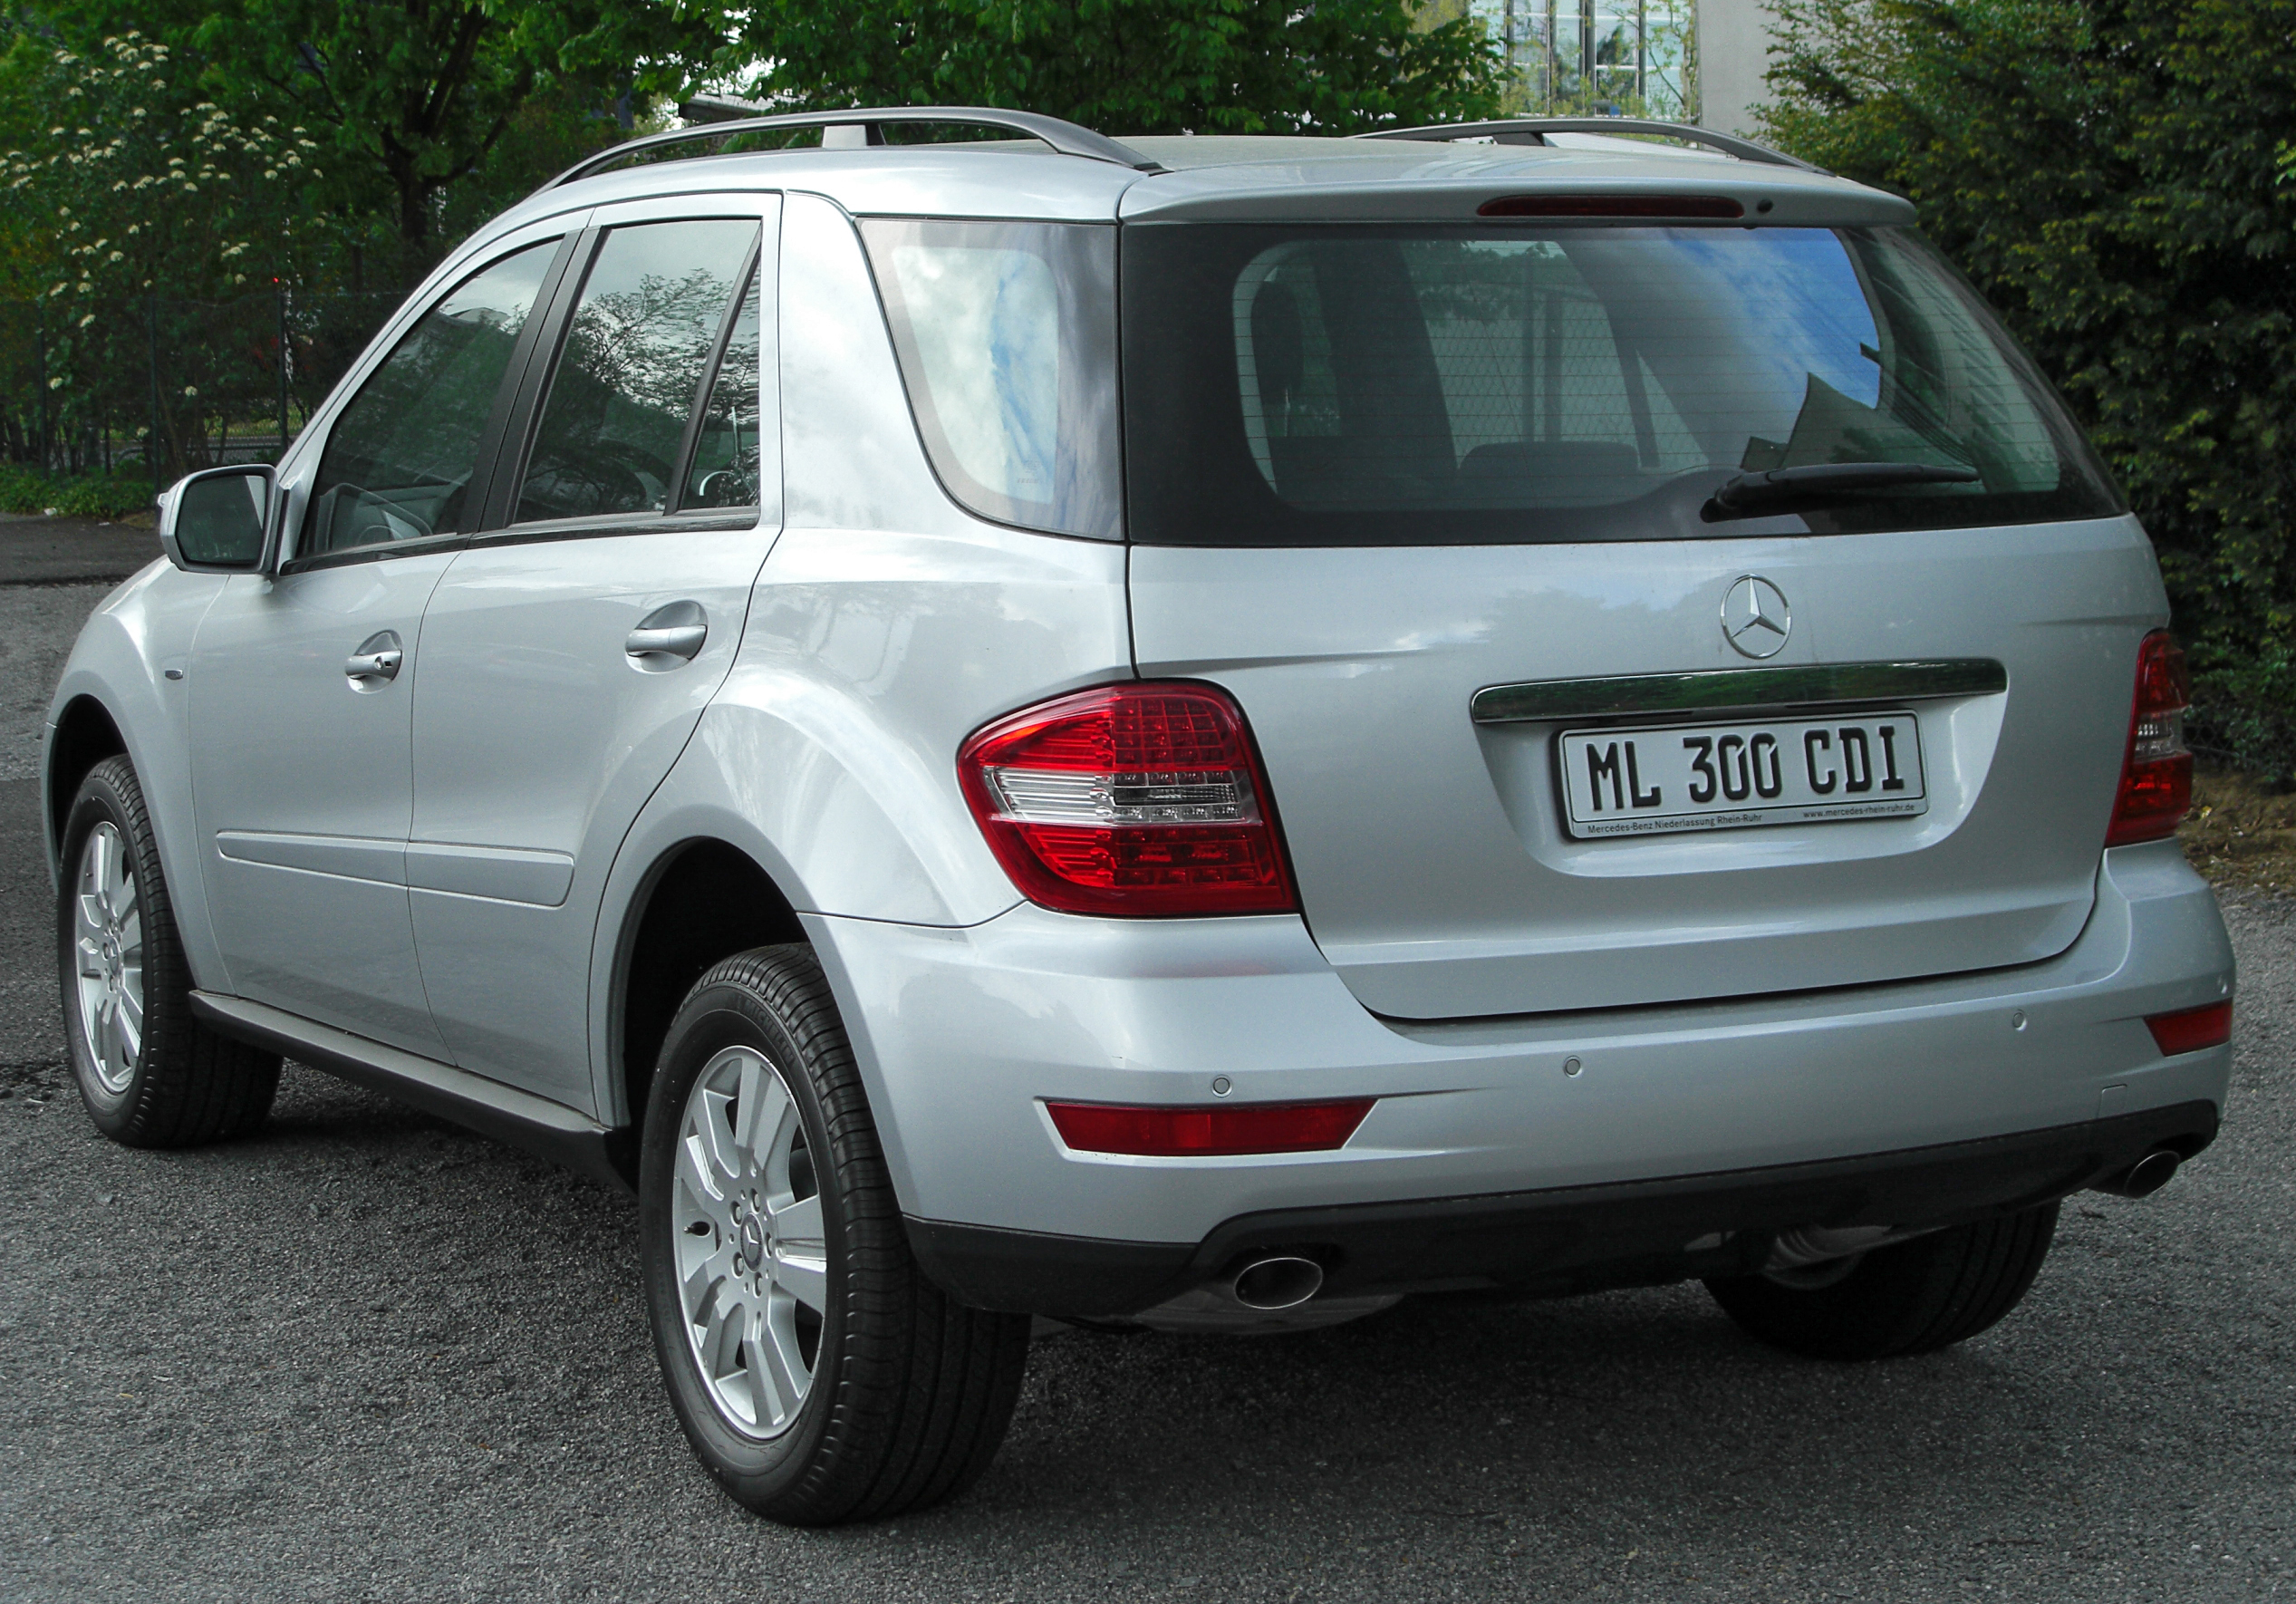 file mercedes ml 300 cdi 4matic blueefficiency w164 facelift rear wikimedia commons. Black Bedroom Furniture Sets. Home Design Ideas